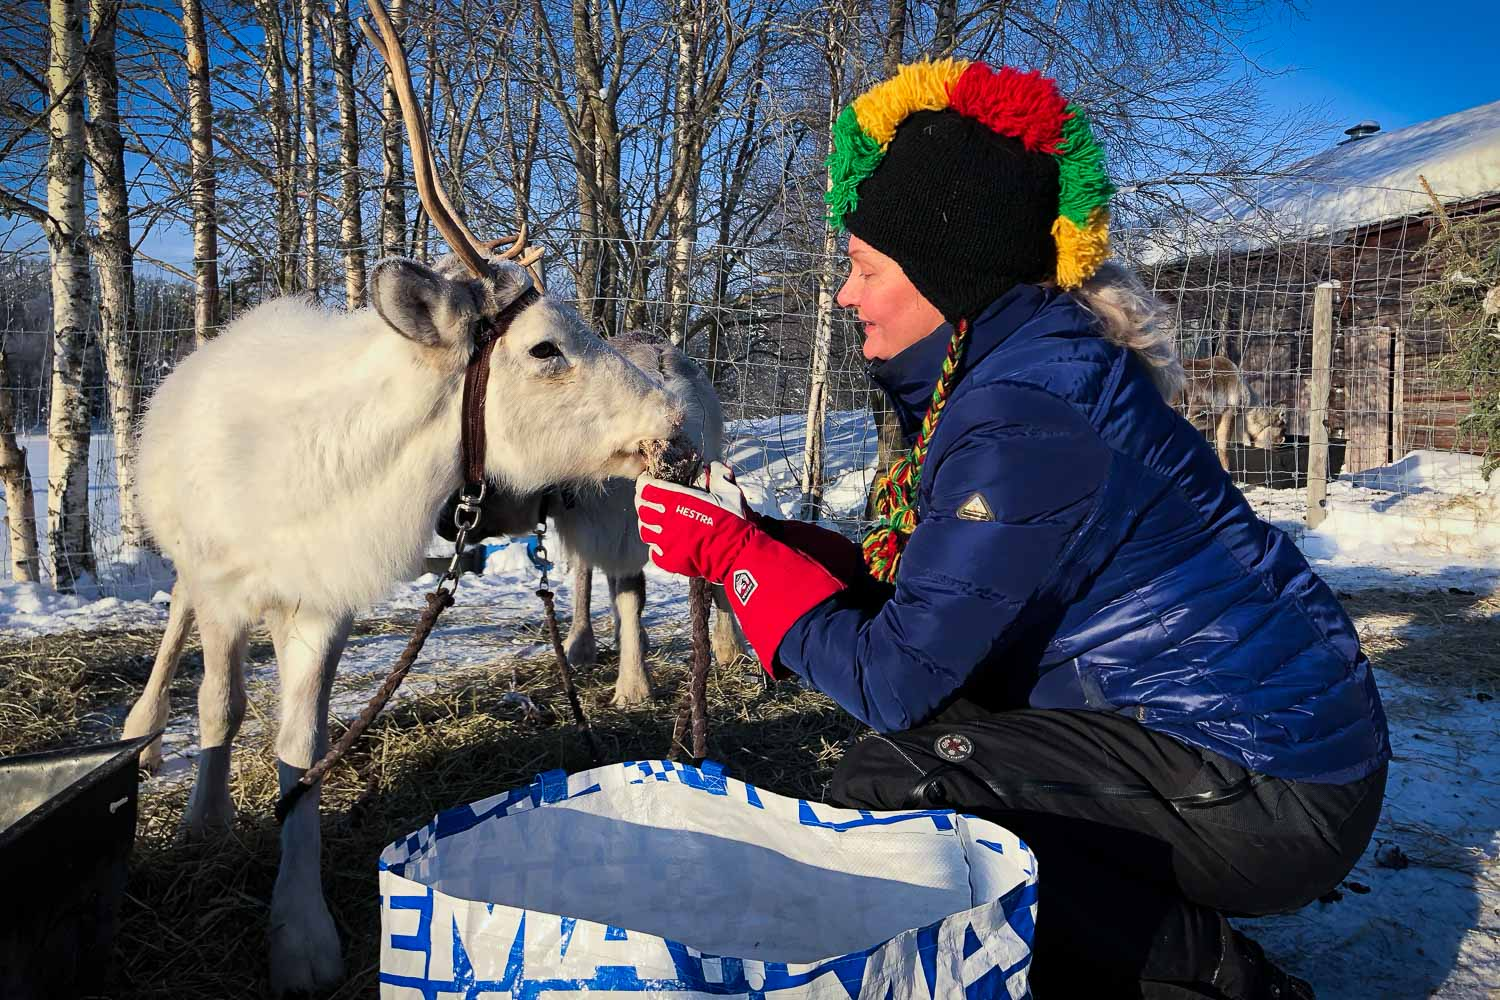 Mother of Swedish reindeer herder: Hunting our animals is out of the question